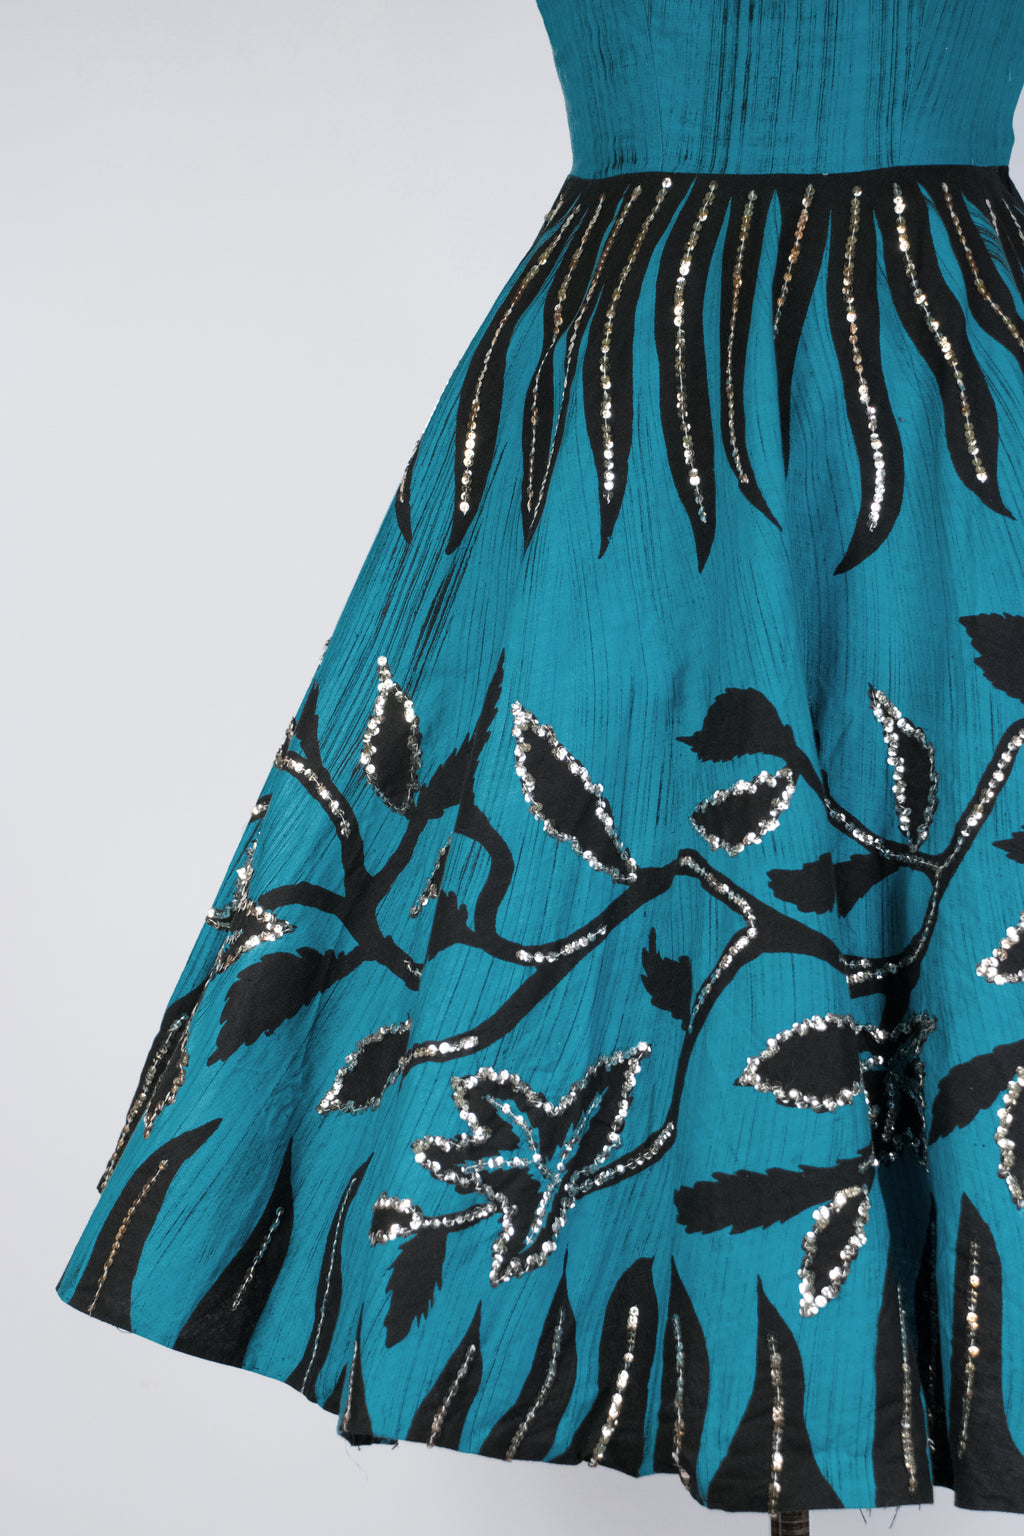 Fabulouse Mexican Sundress in Bold Turquoise with Climbing Branch Motif and Silver Sequins